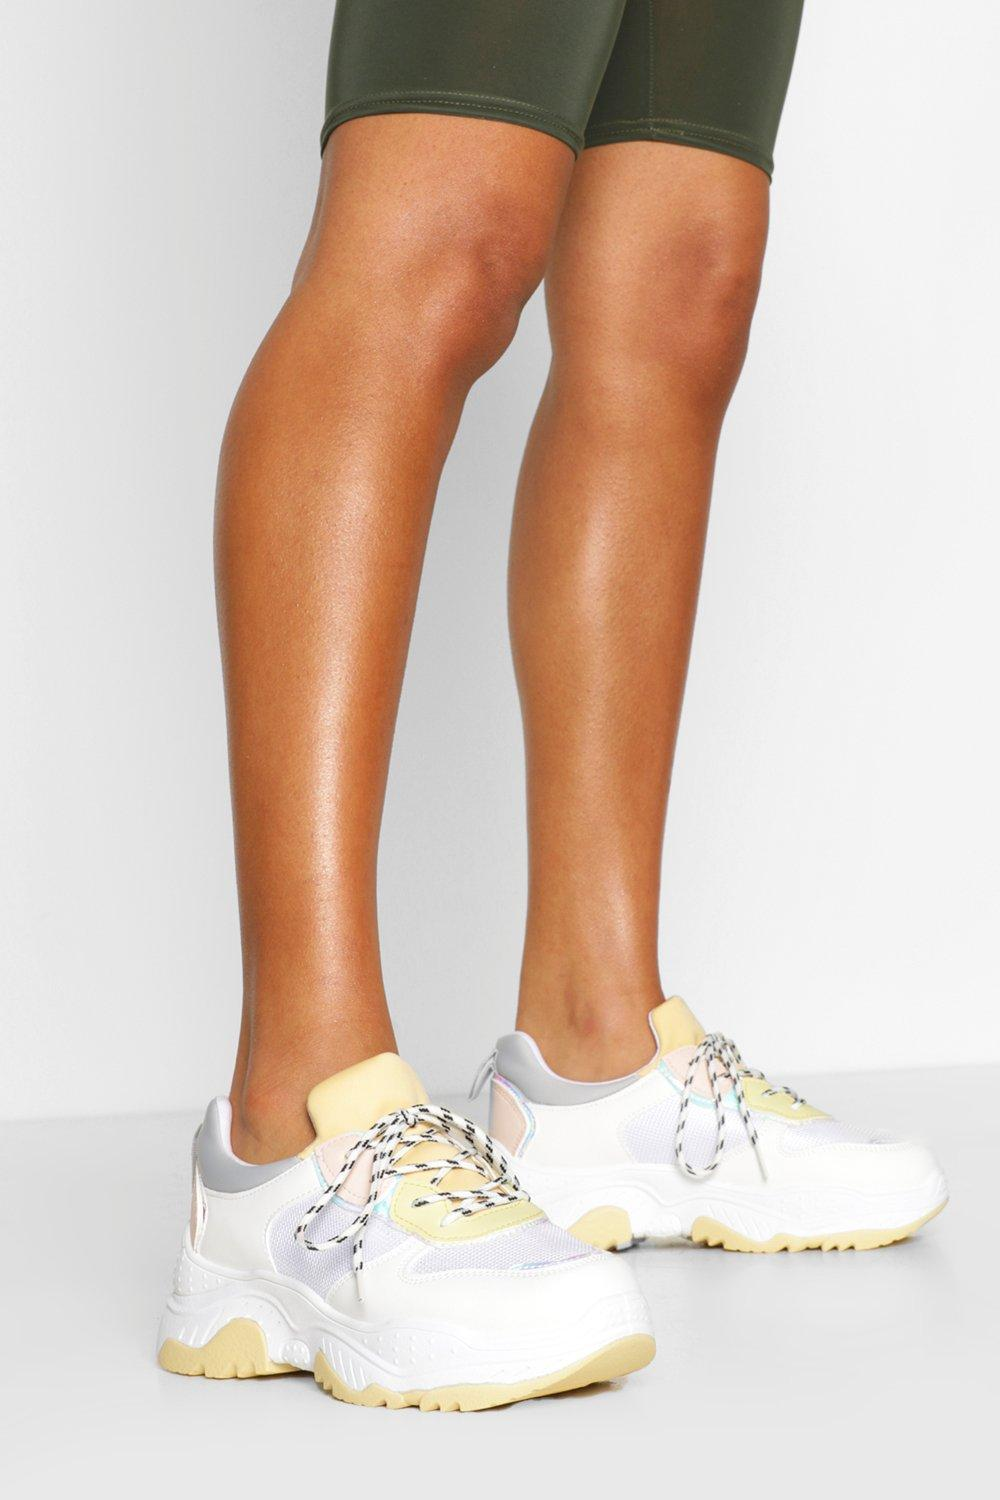 SHOES Pastel Colour Block Chunky Trainers